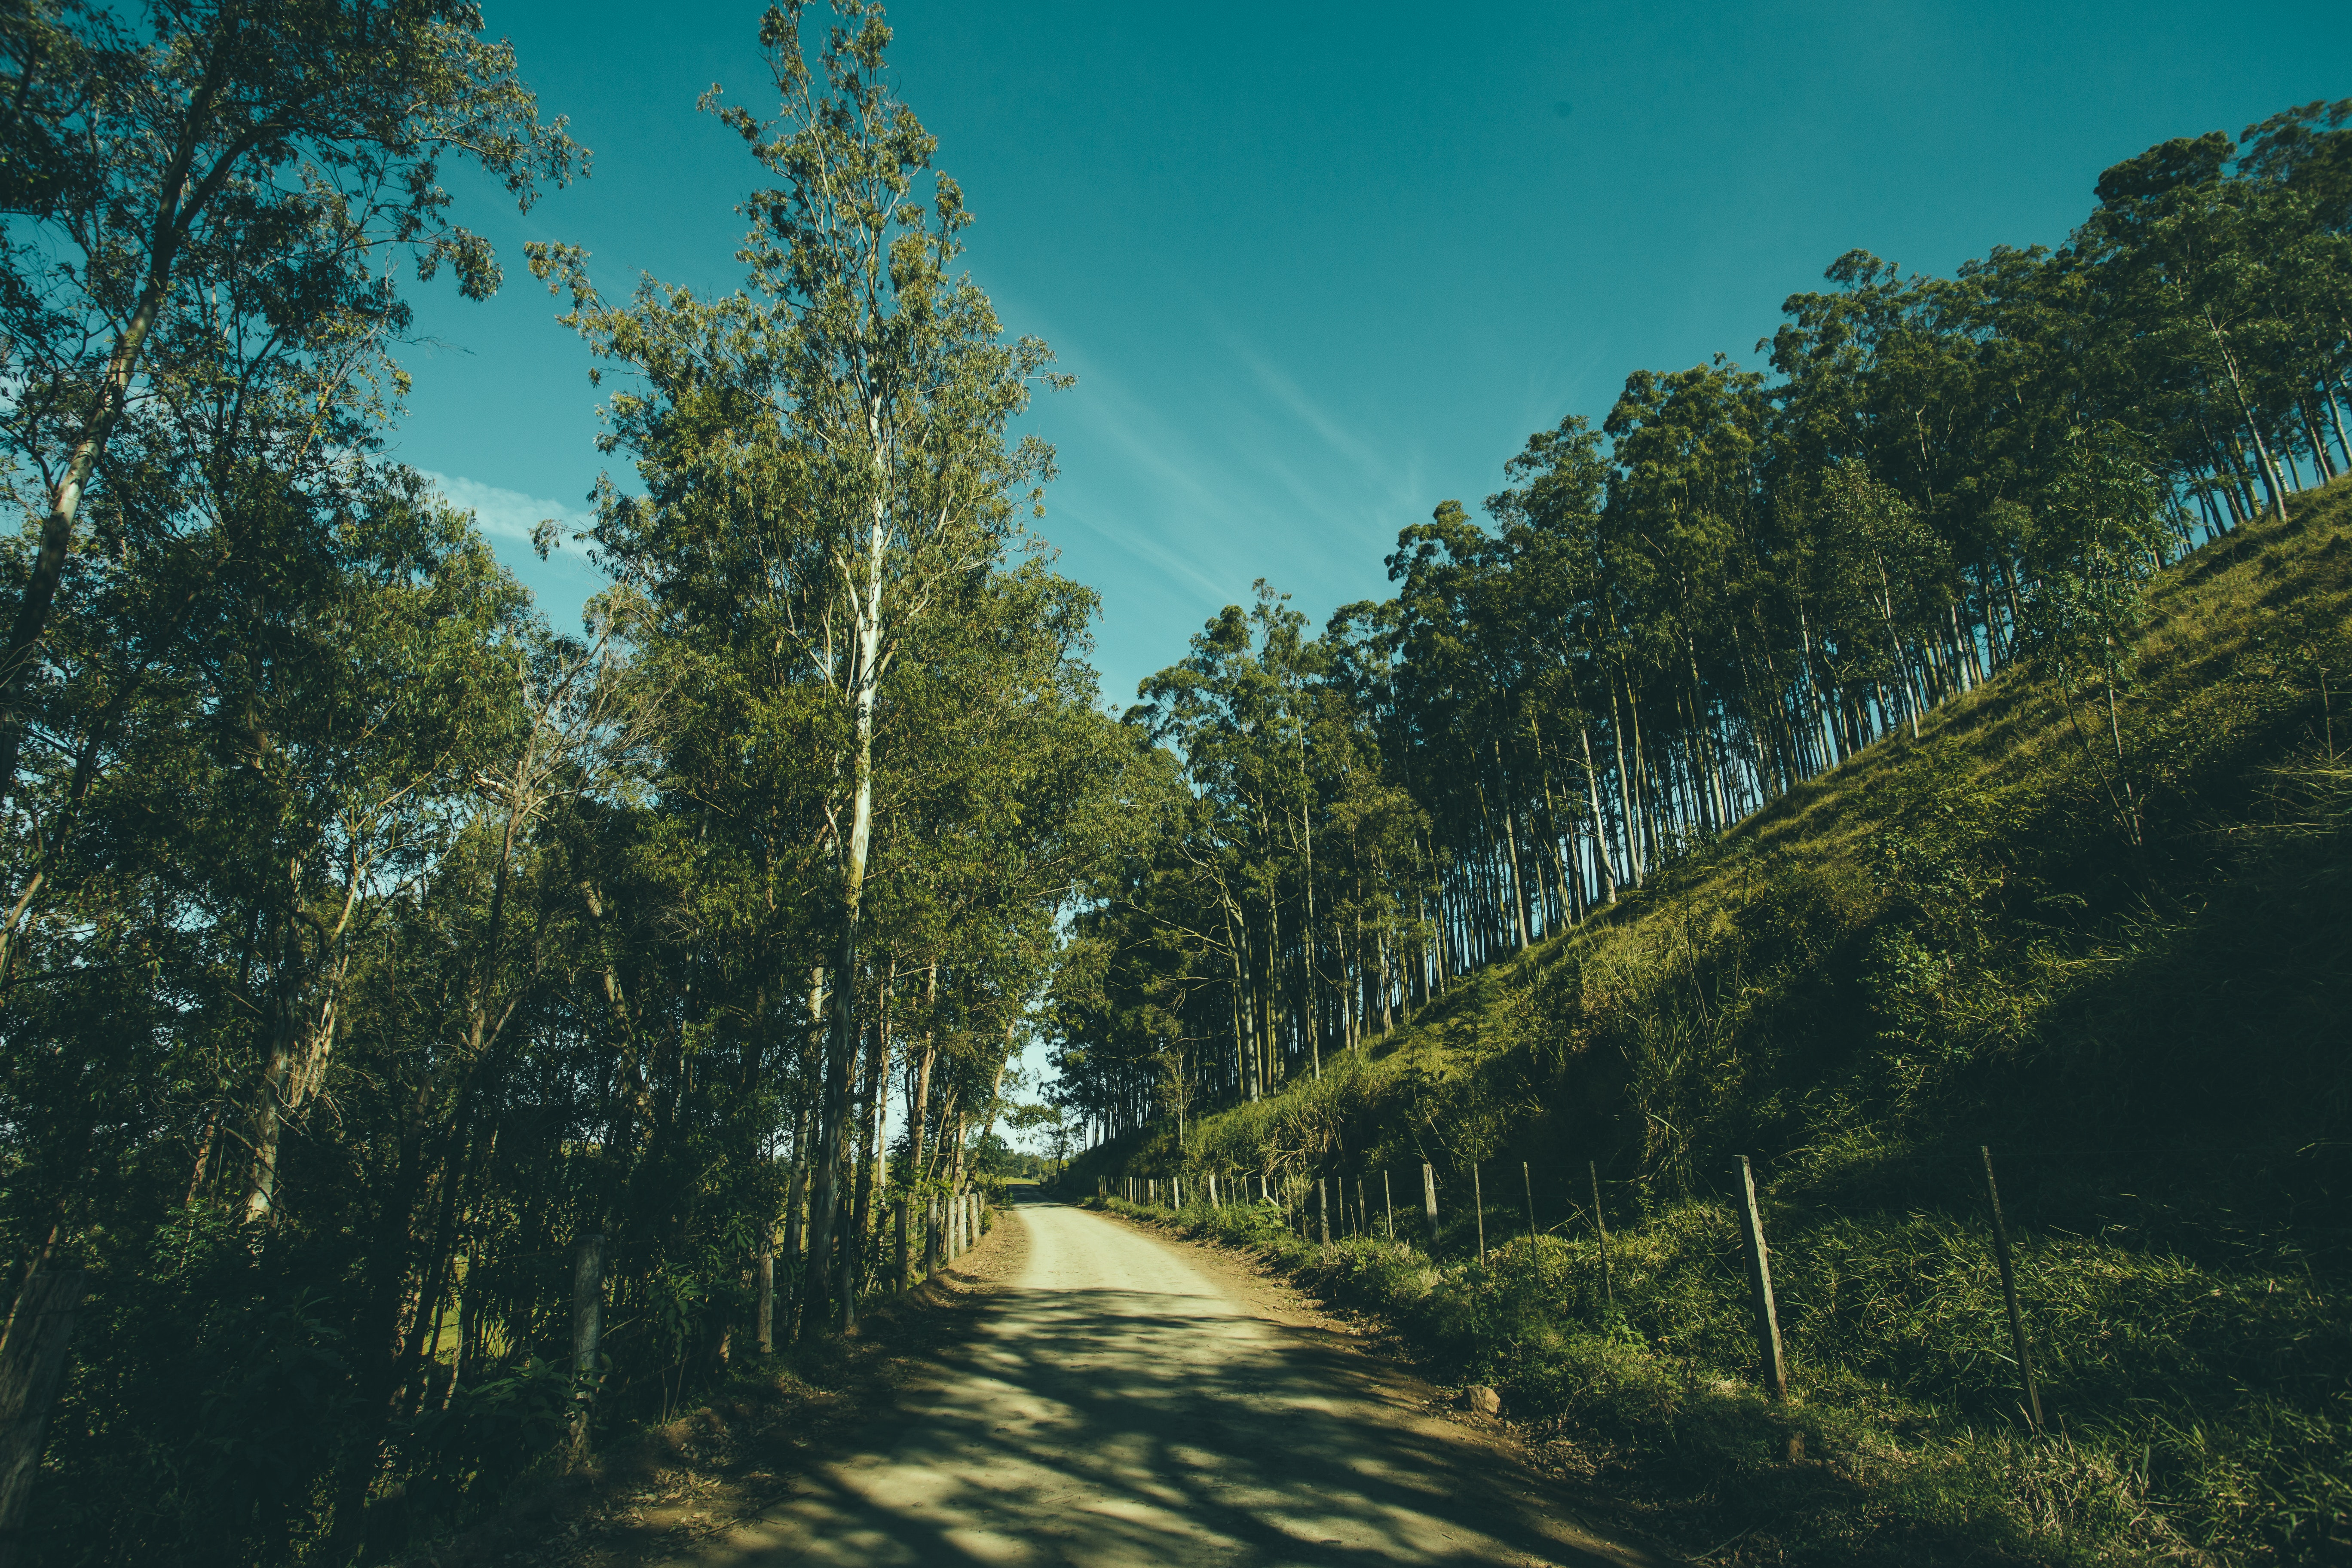 Grey Pathway in Middle on Green Trees and Grass Fields during Daytime, Adventure, Mountain, Trees, Travel, HQ Photo